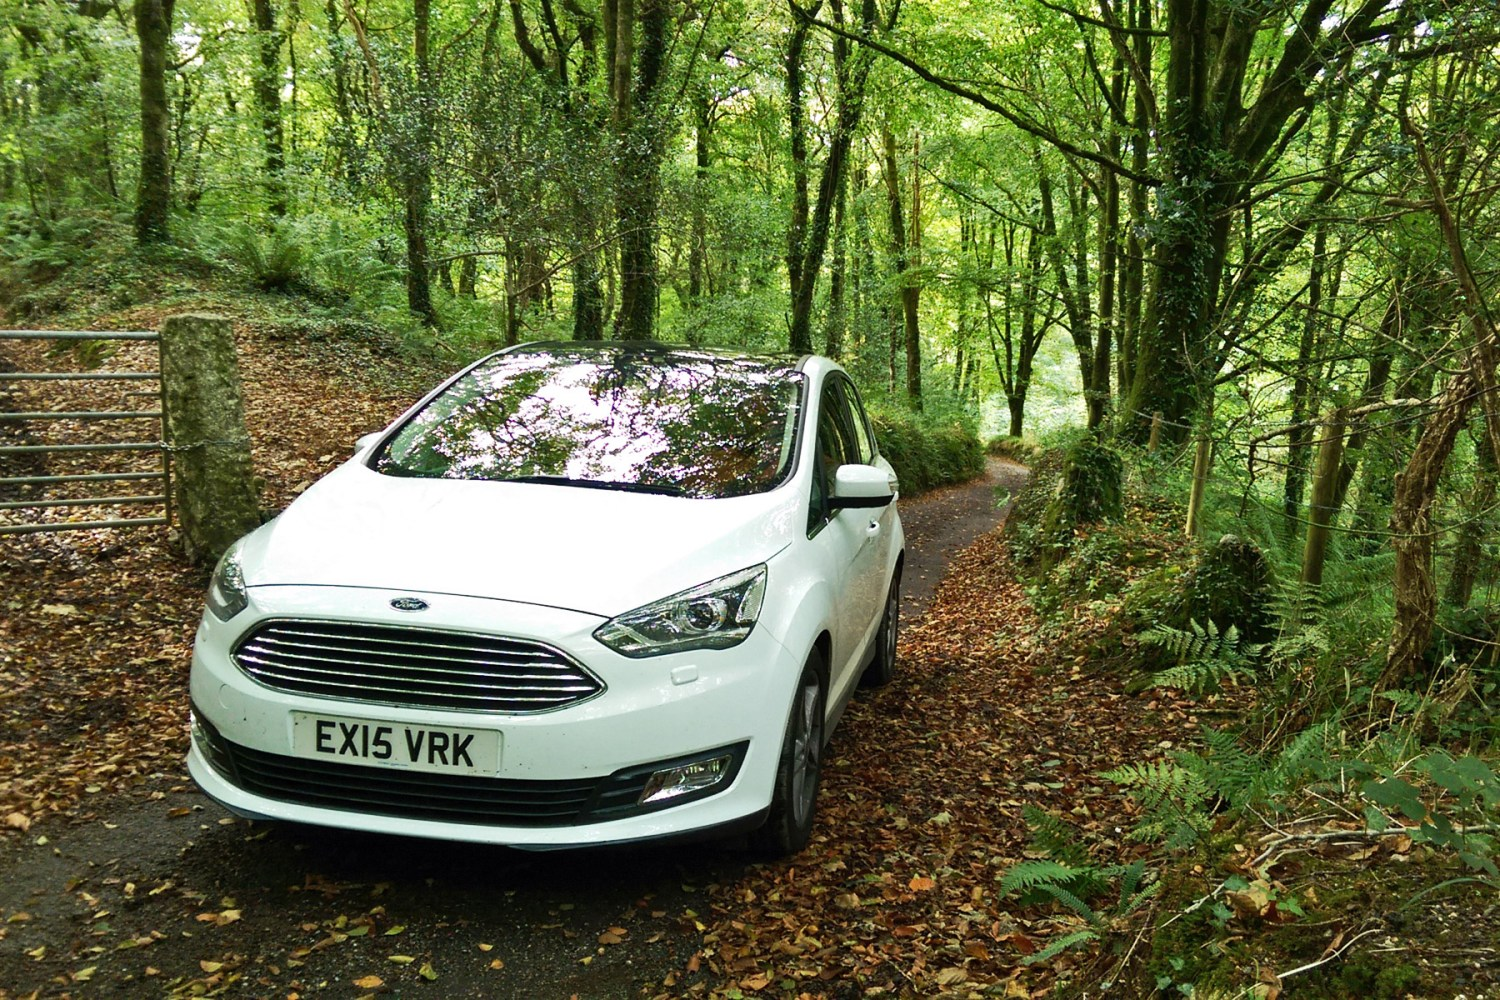 2015 Ford C-Max 1.5 TDCI Titanium X: a week in Cornwall